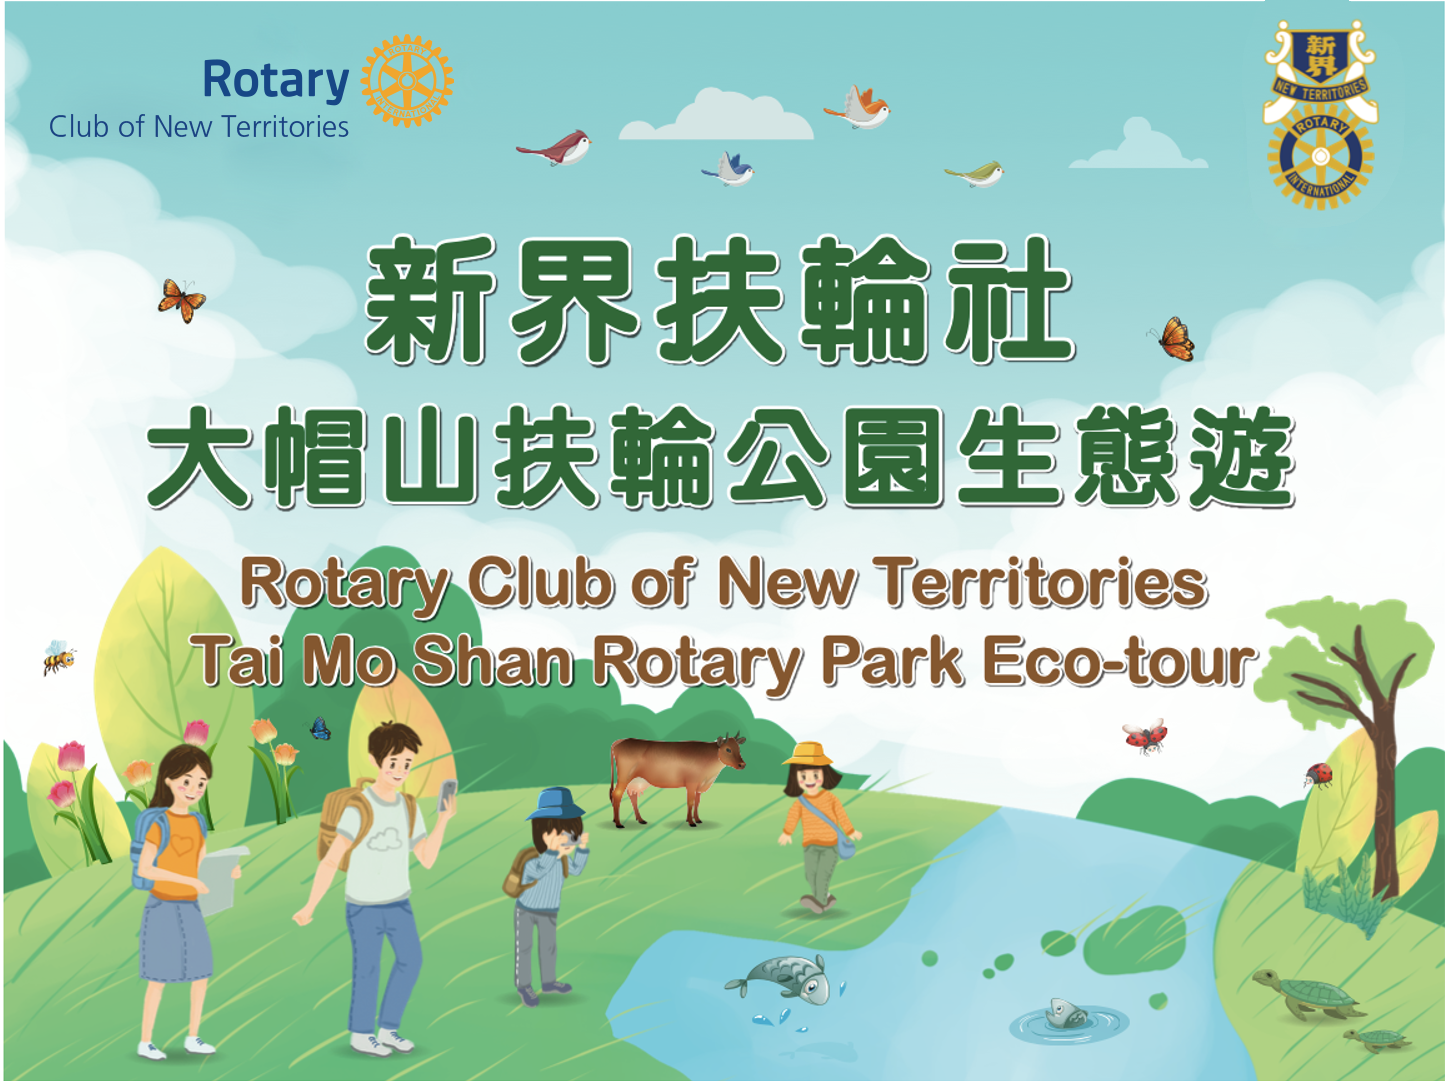 Eco-tour at Rotary Park, Tai Mo Shan – The latest green idea of Rotary Club of New Territories